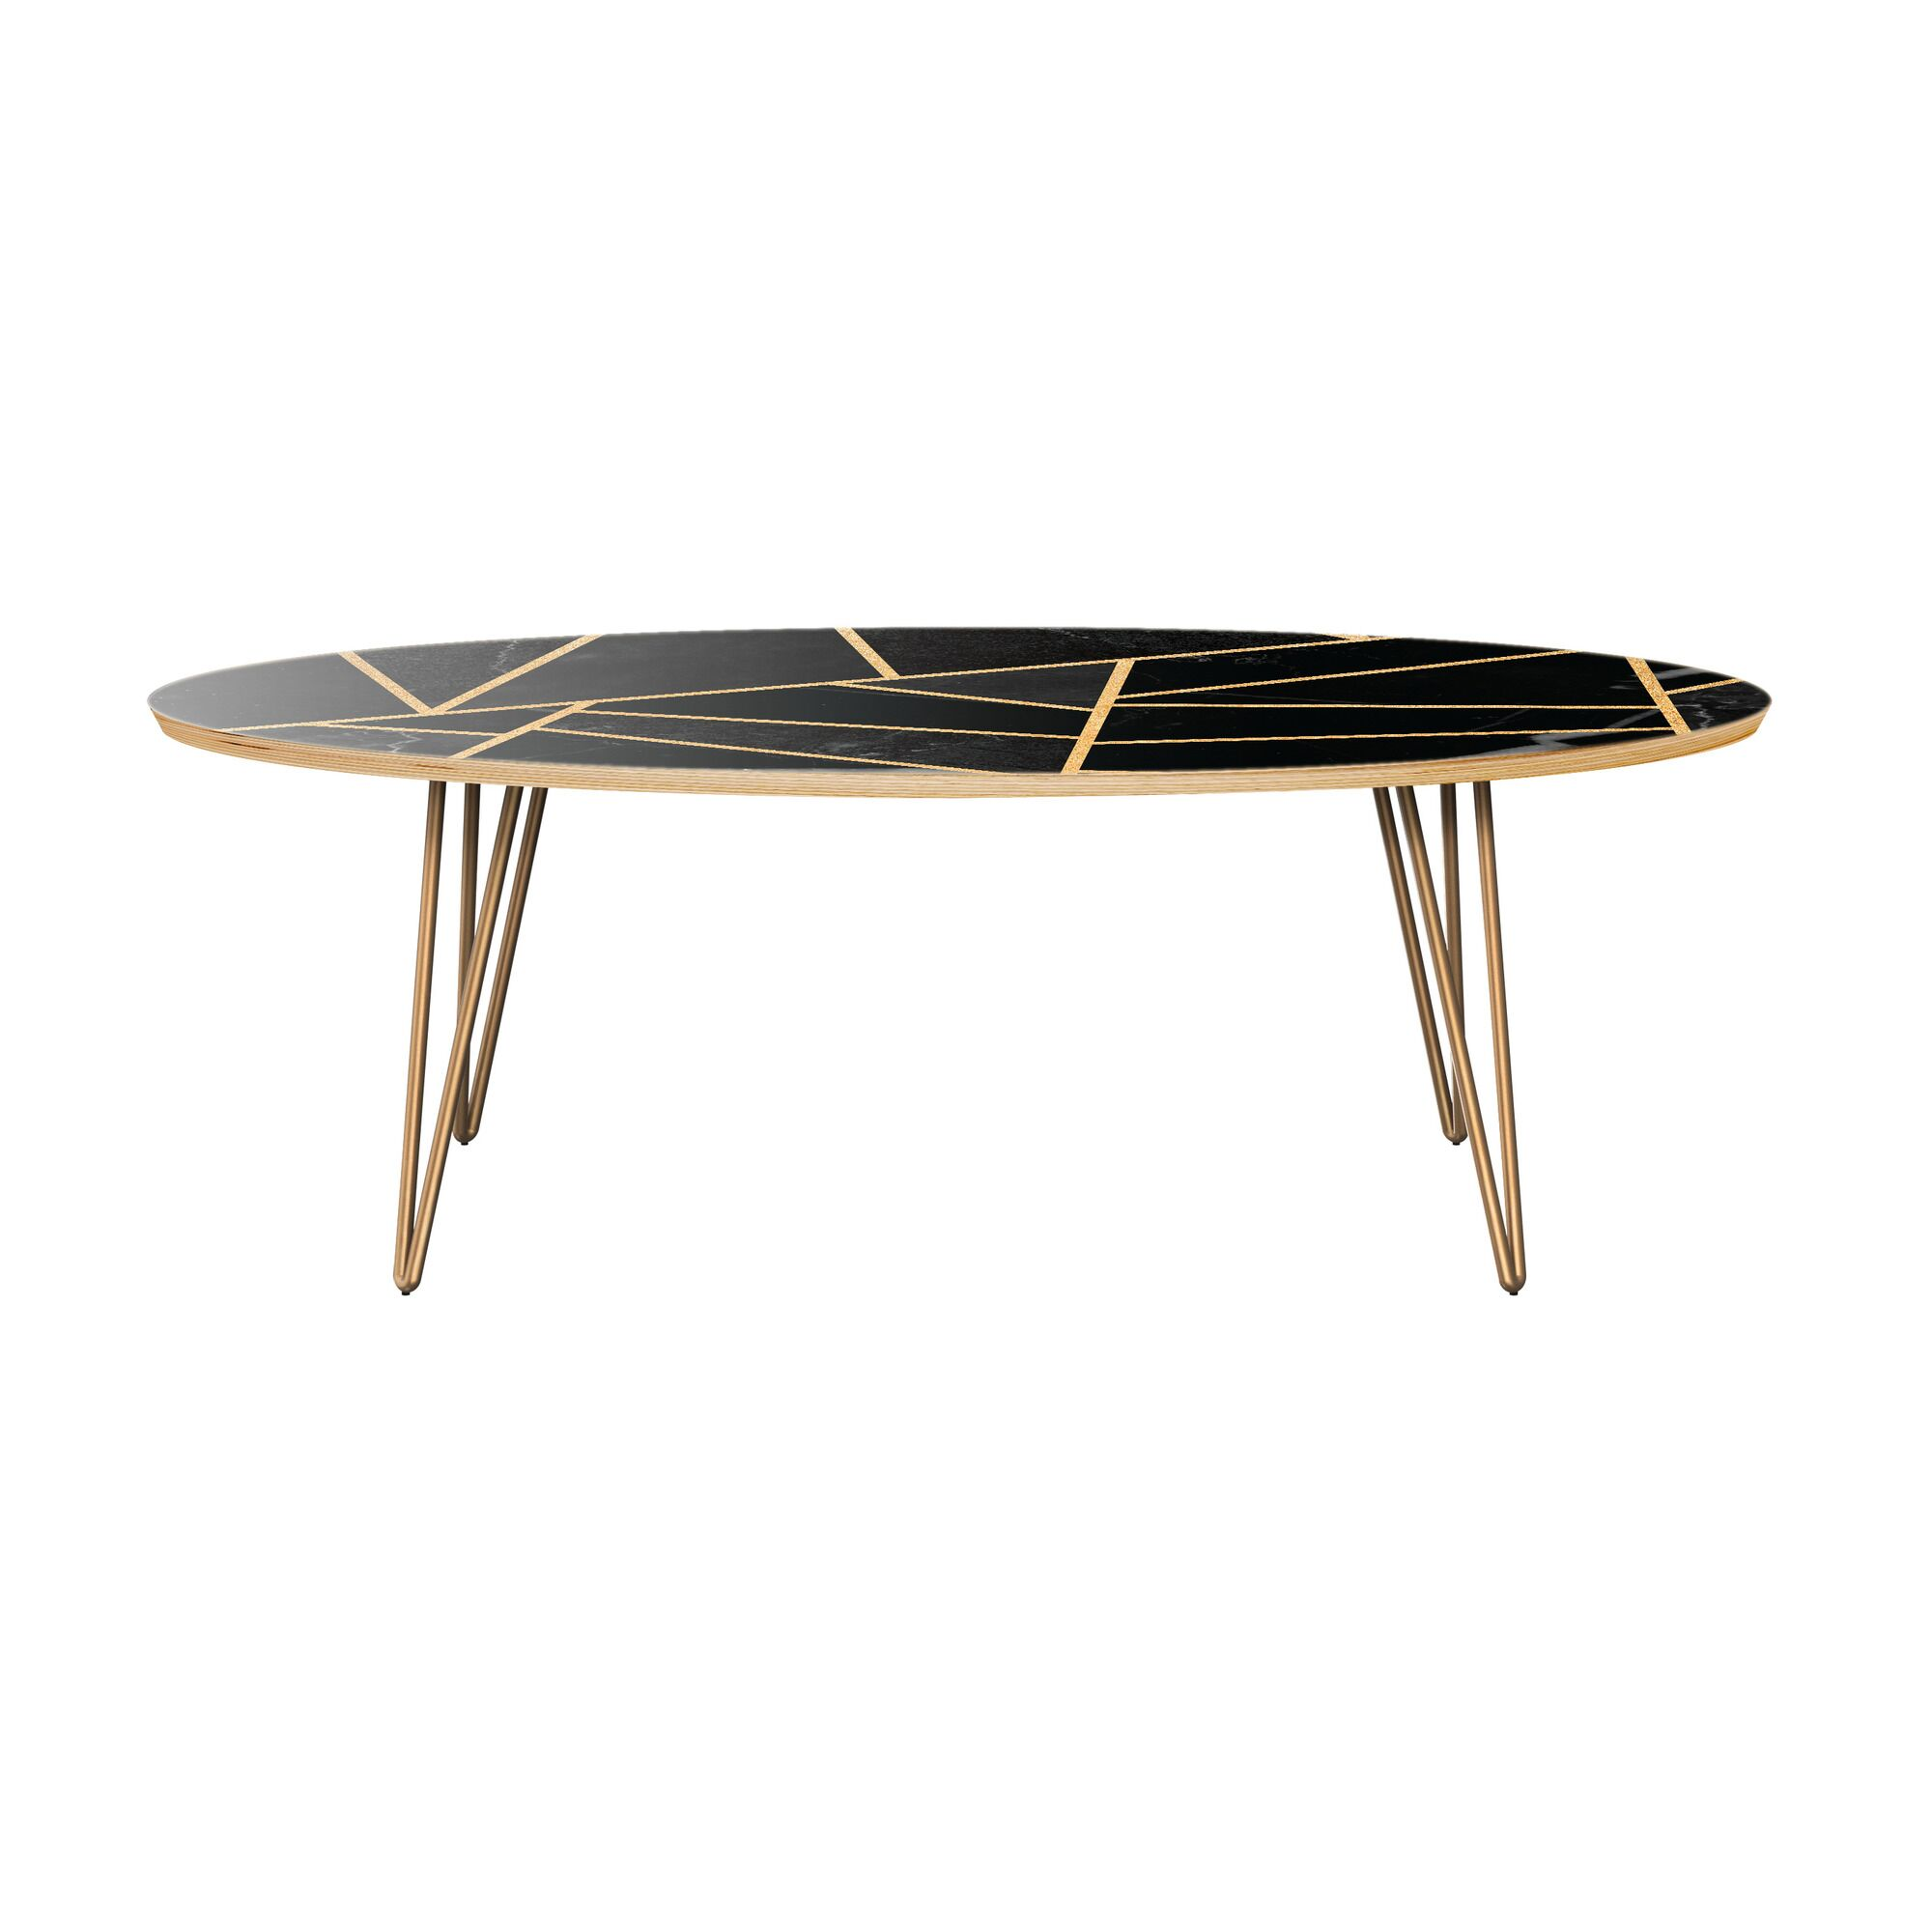 Mcgill Coffee Table Table Base Color: Brass, Table Top Color: Natural/Black